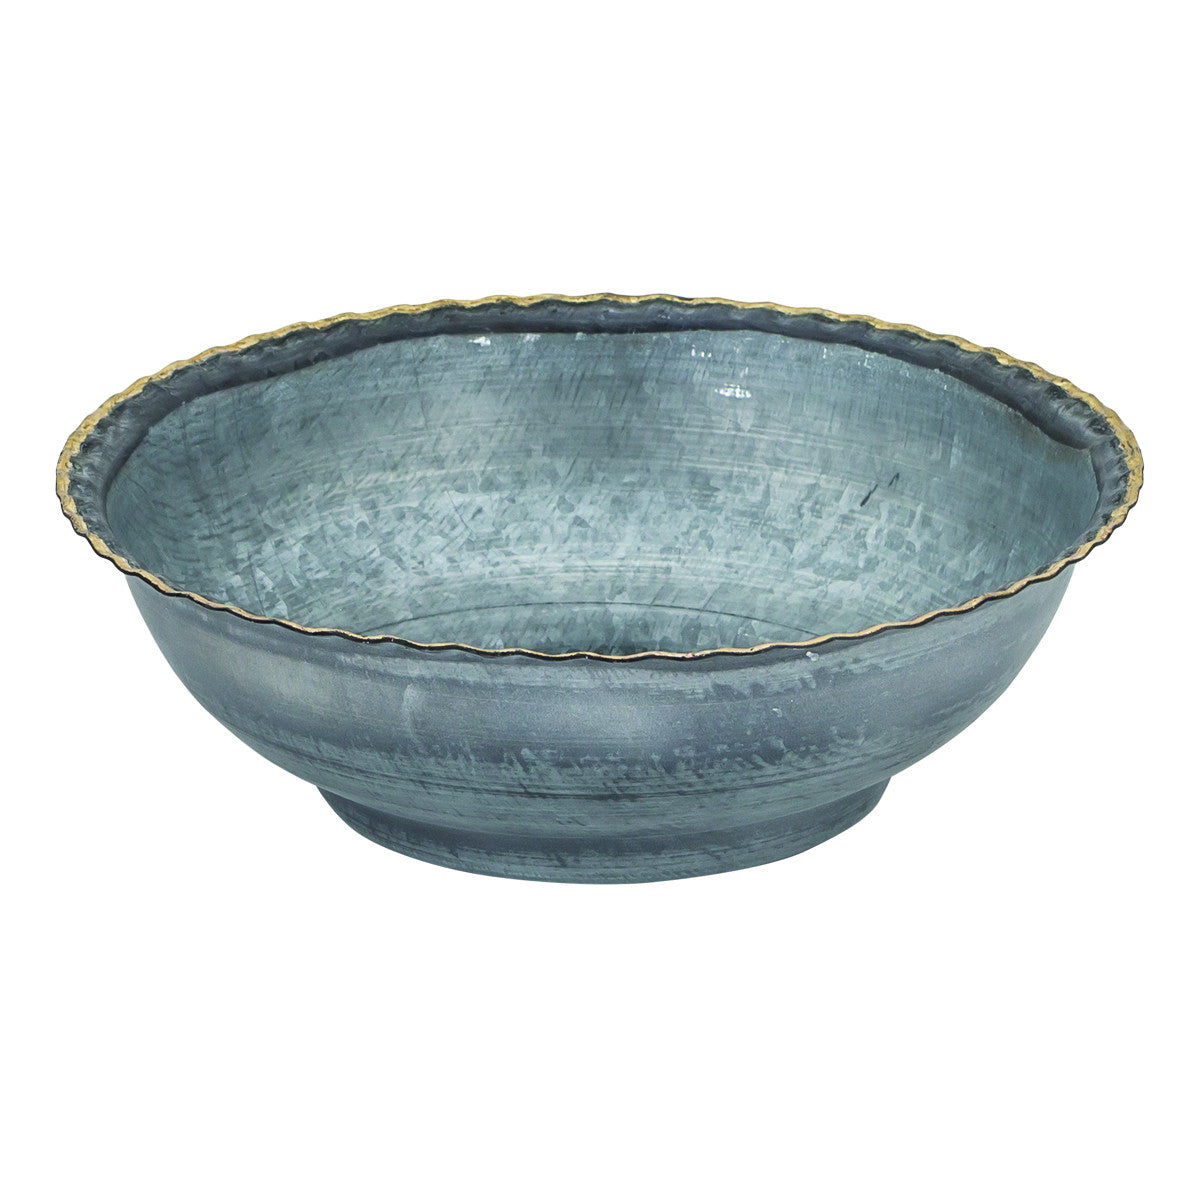 San Miguel Scalloped Bowl